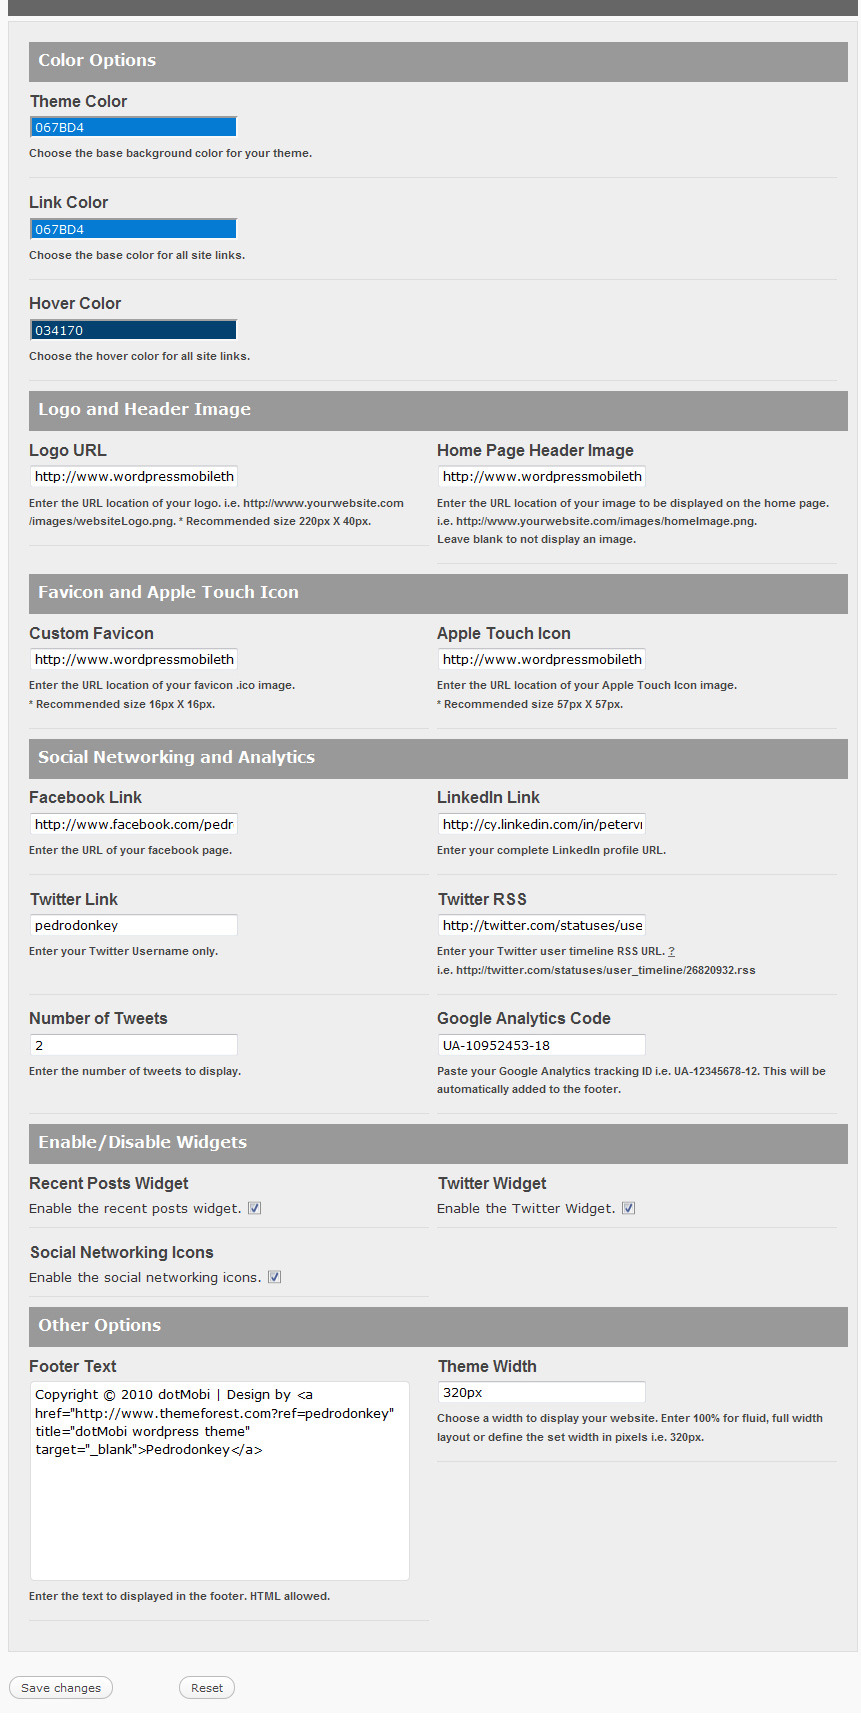 mobiTheme - WordPress Theme for Mobile Devices - Theme Options Panel.